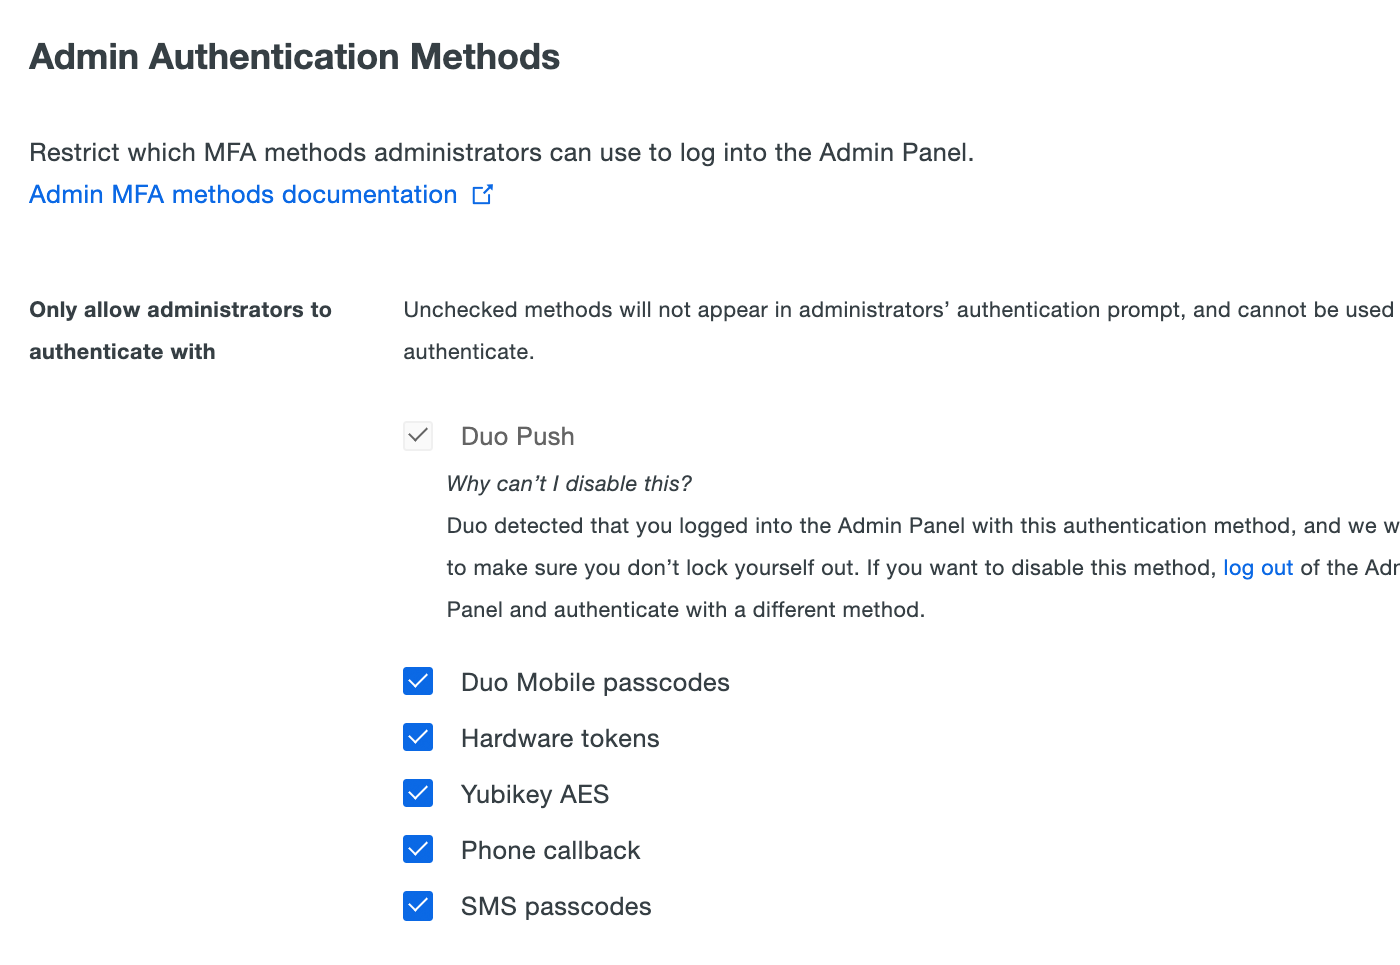 Restrict Admin Authentication Methods